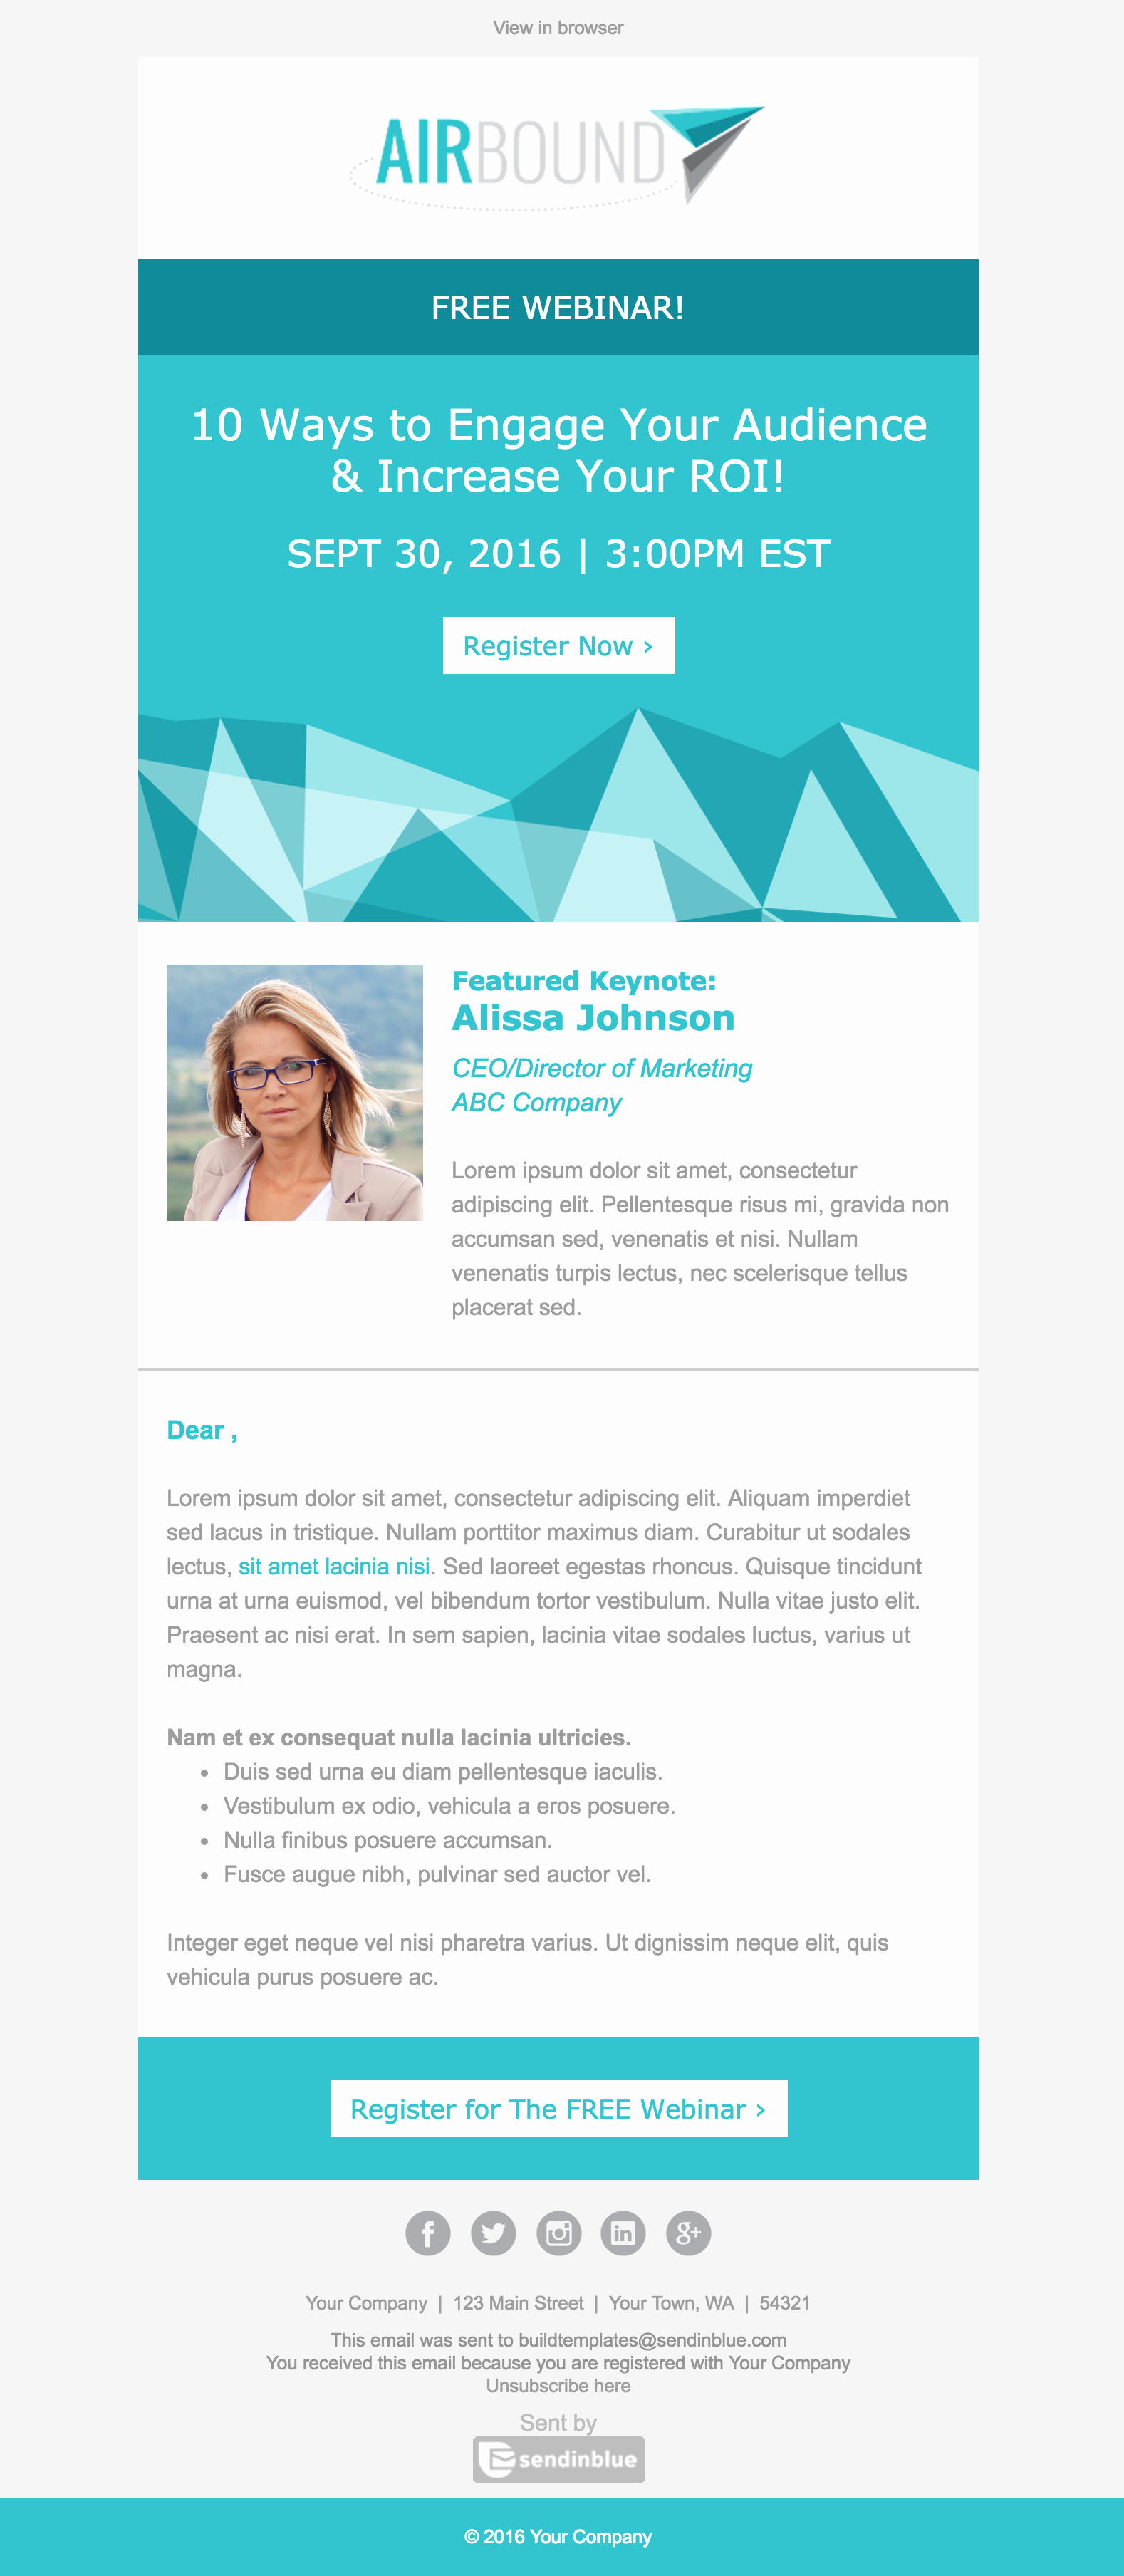 Event Invitation Email Template Luxury top 8 B2b Email Templates for Marketers In 2017